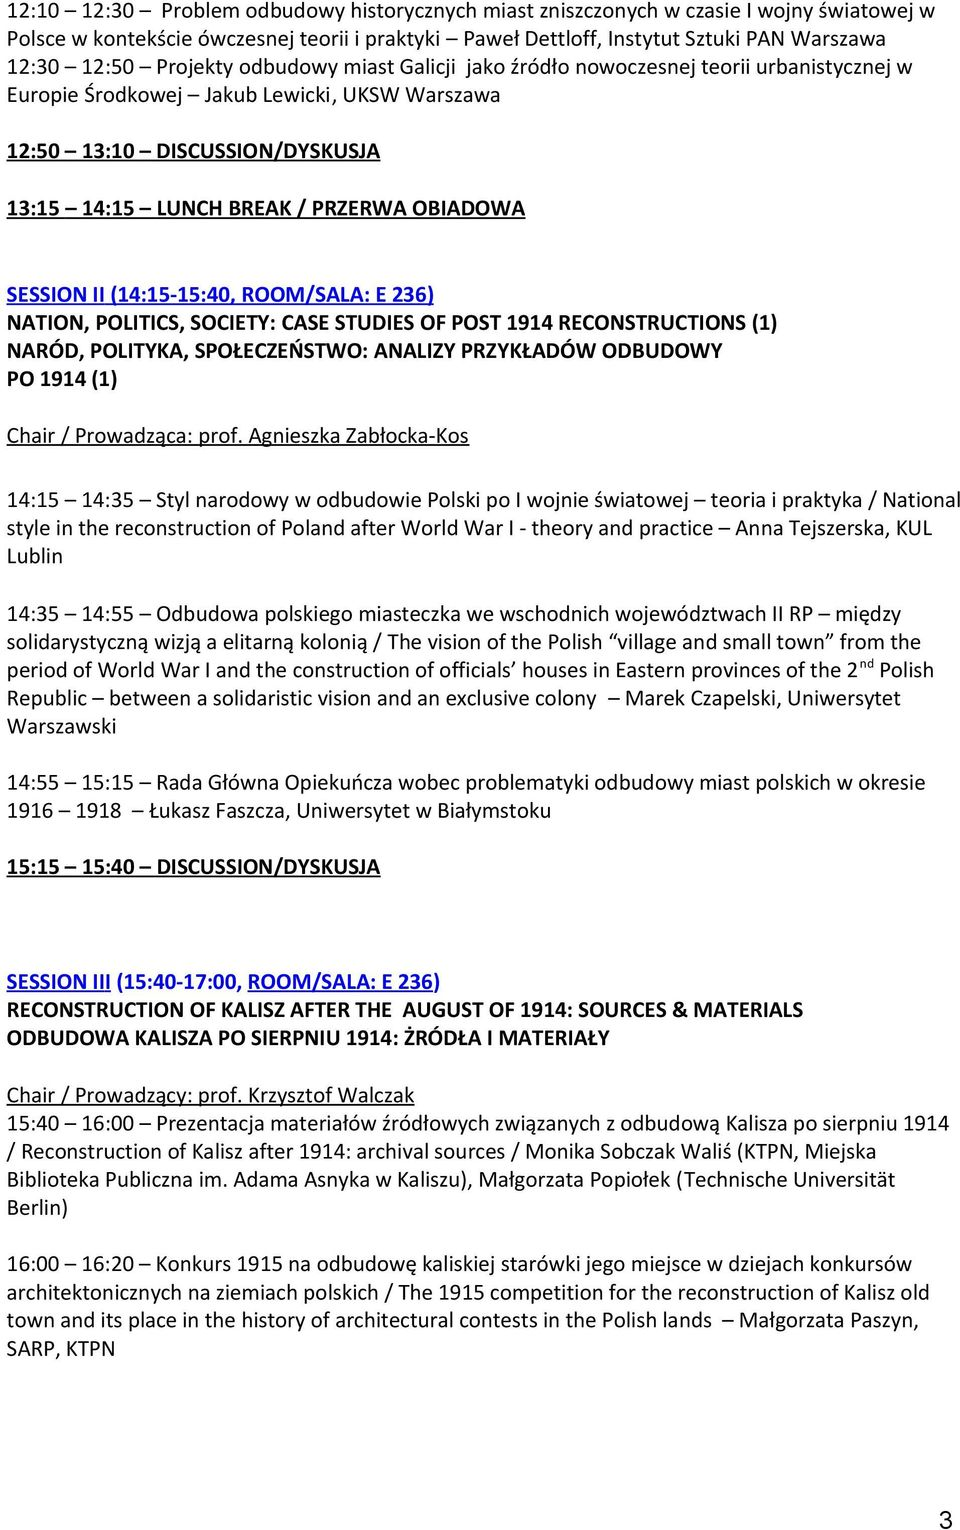 OBIADOWA SESSION II (14:15-15:40, ROOM/SALA: E 236) NATION, POLITICS, SOCIETY: CASE STUDIES OF POST 1914 RECONSTRUCTIONS (1) NARÓD, POLITYKA, SPOŁECZEŃSTWO: ANALIZY PRZYKŁADÓW ODBUDOWY PO 1914 (1)